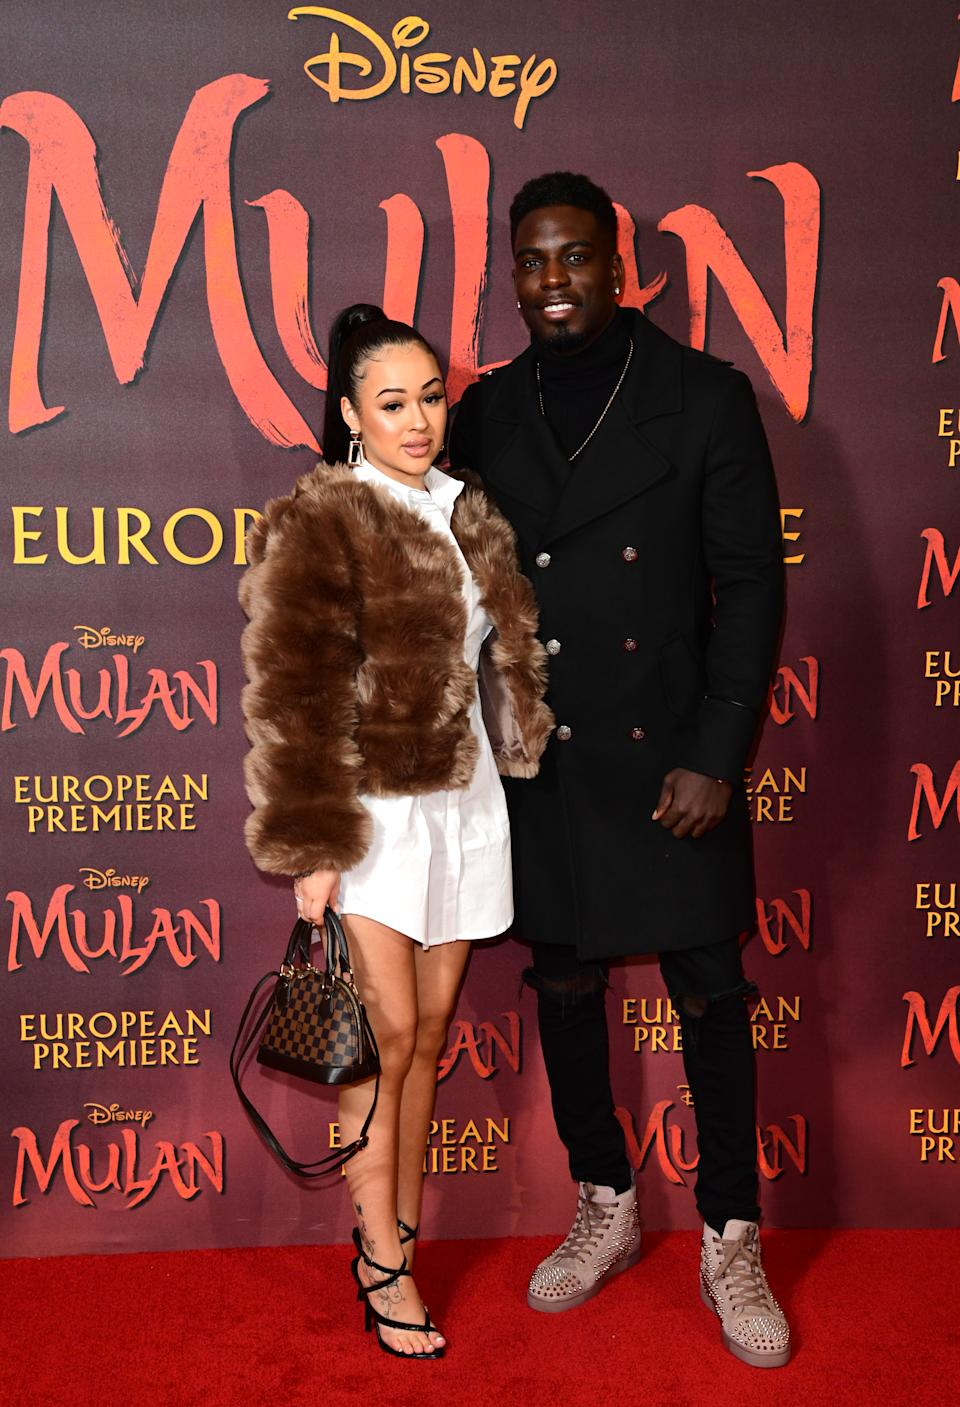 Rebecca Vieira and Marcel Somerville attending the European premiere of Disney's Mulan, held in Leicester Square, London. (Photo by Ian West/PA Images via Getty Images)